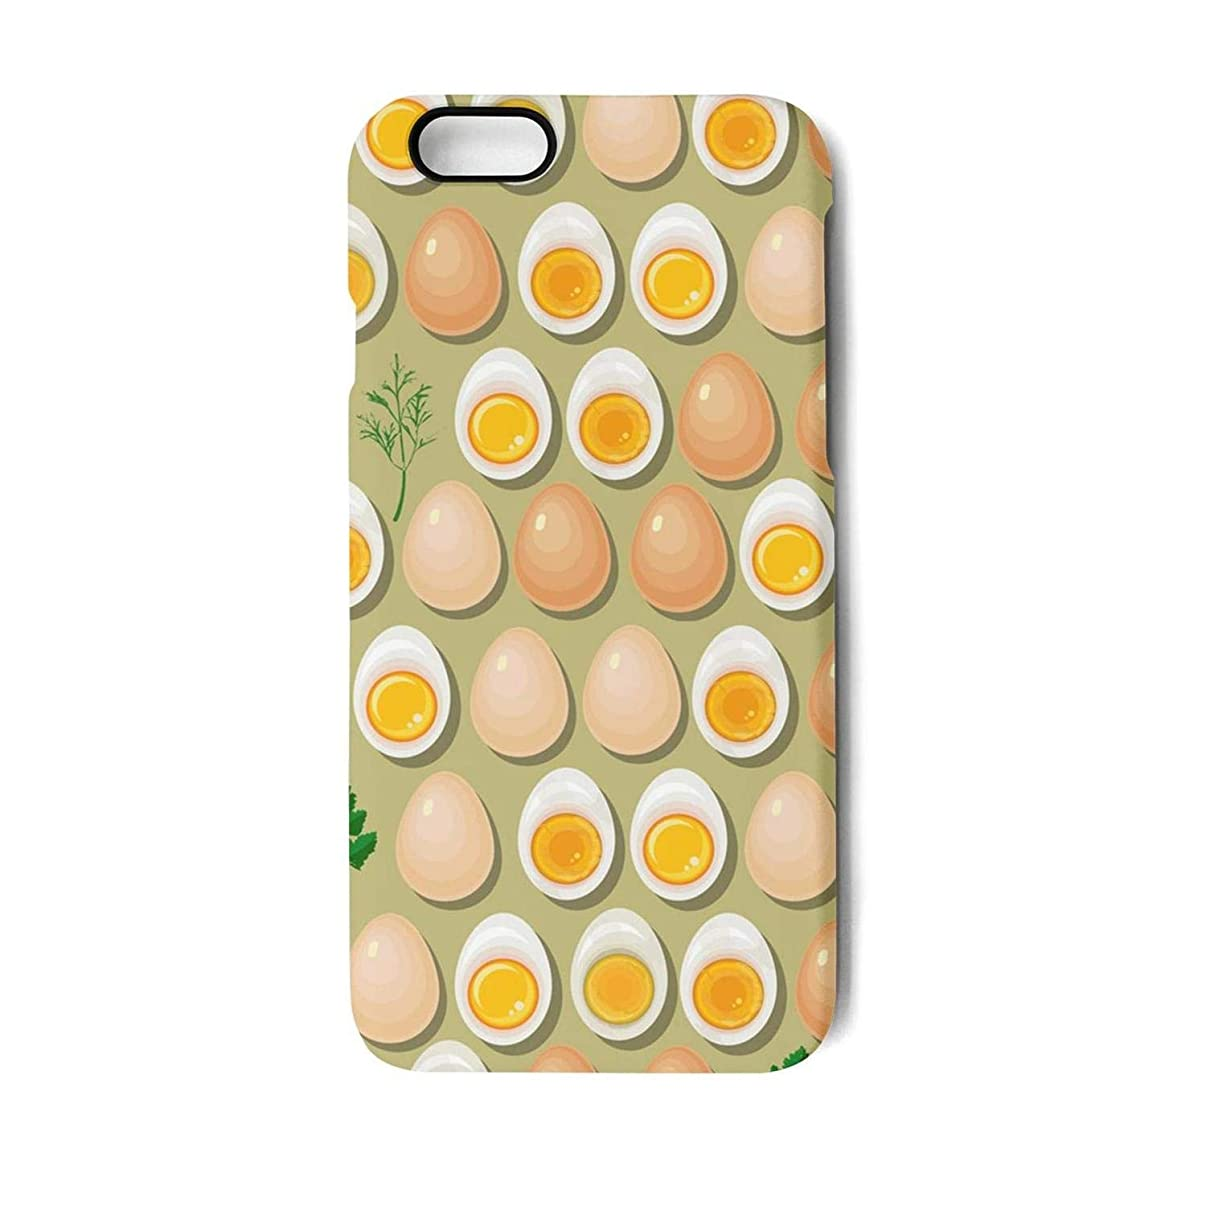 SJSNBZ Eggs yolks Parsley Phone Case Back Cover iPhone 7 iPhone 8 Cool TPU PC Matte Anti-Scratch Non Slip Anti Finger Print